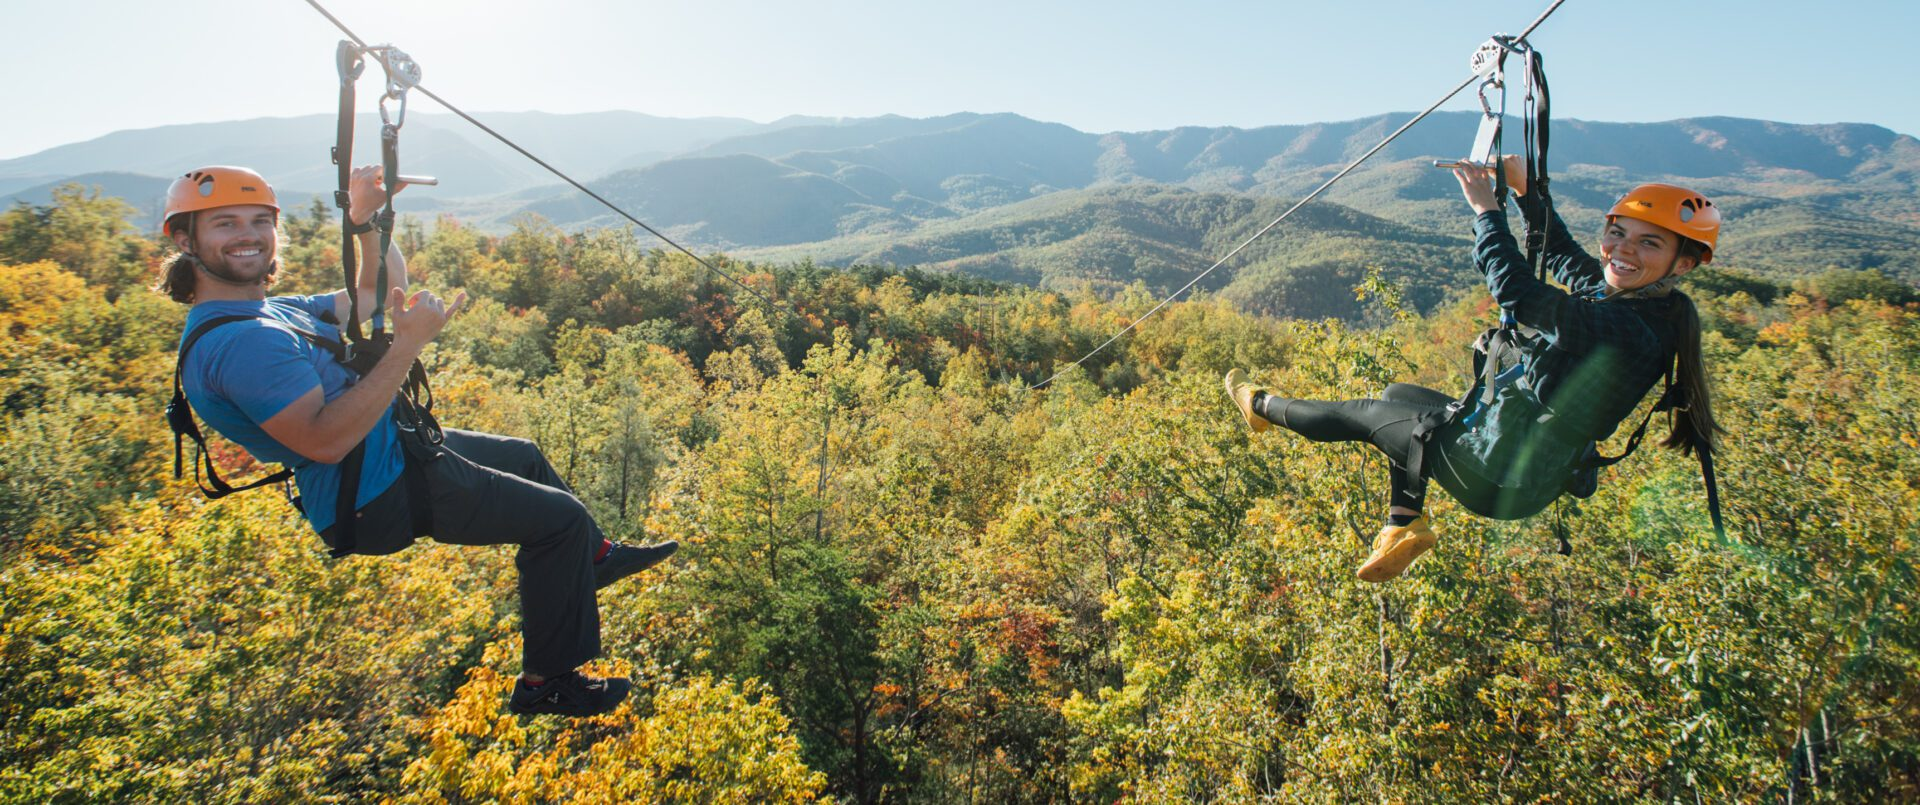 4 Reasons People Love Ziplining in the Smoky Mountains at CLIMB Works